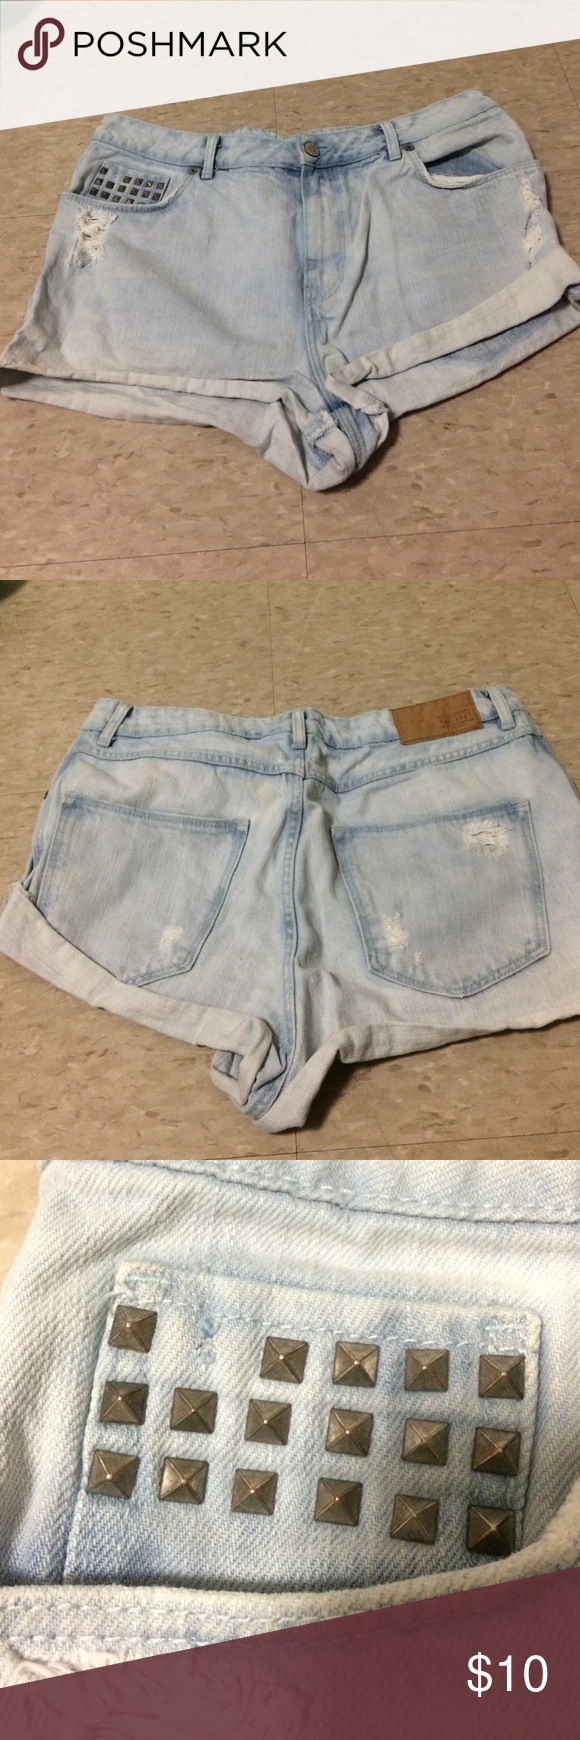 High rise shorts High rise shorts. Missing one stud. Says size 12 but they seem small for a 12. I wear a size 4/5. Worn once Divided Shorts Jean Shorts